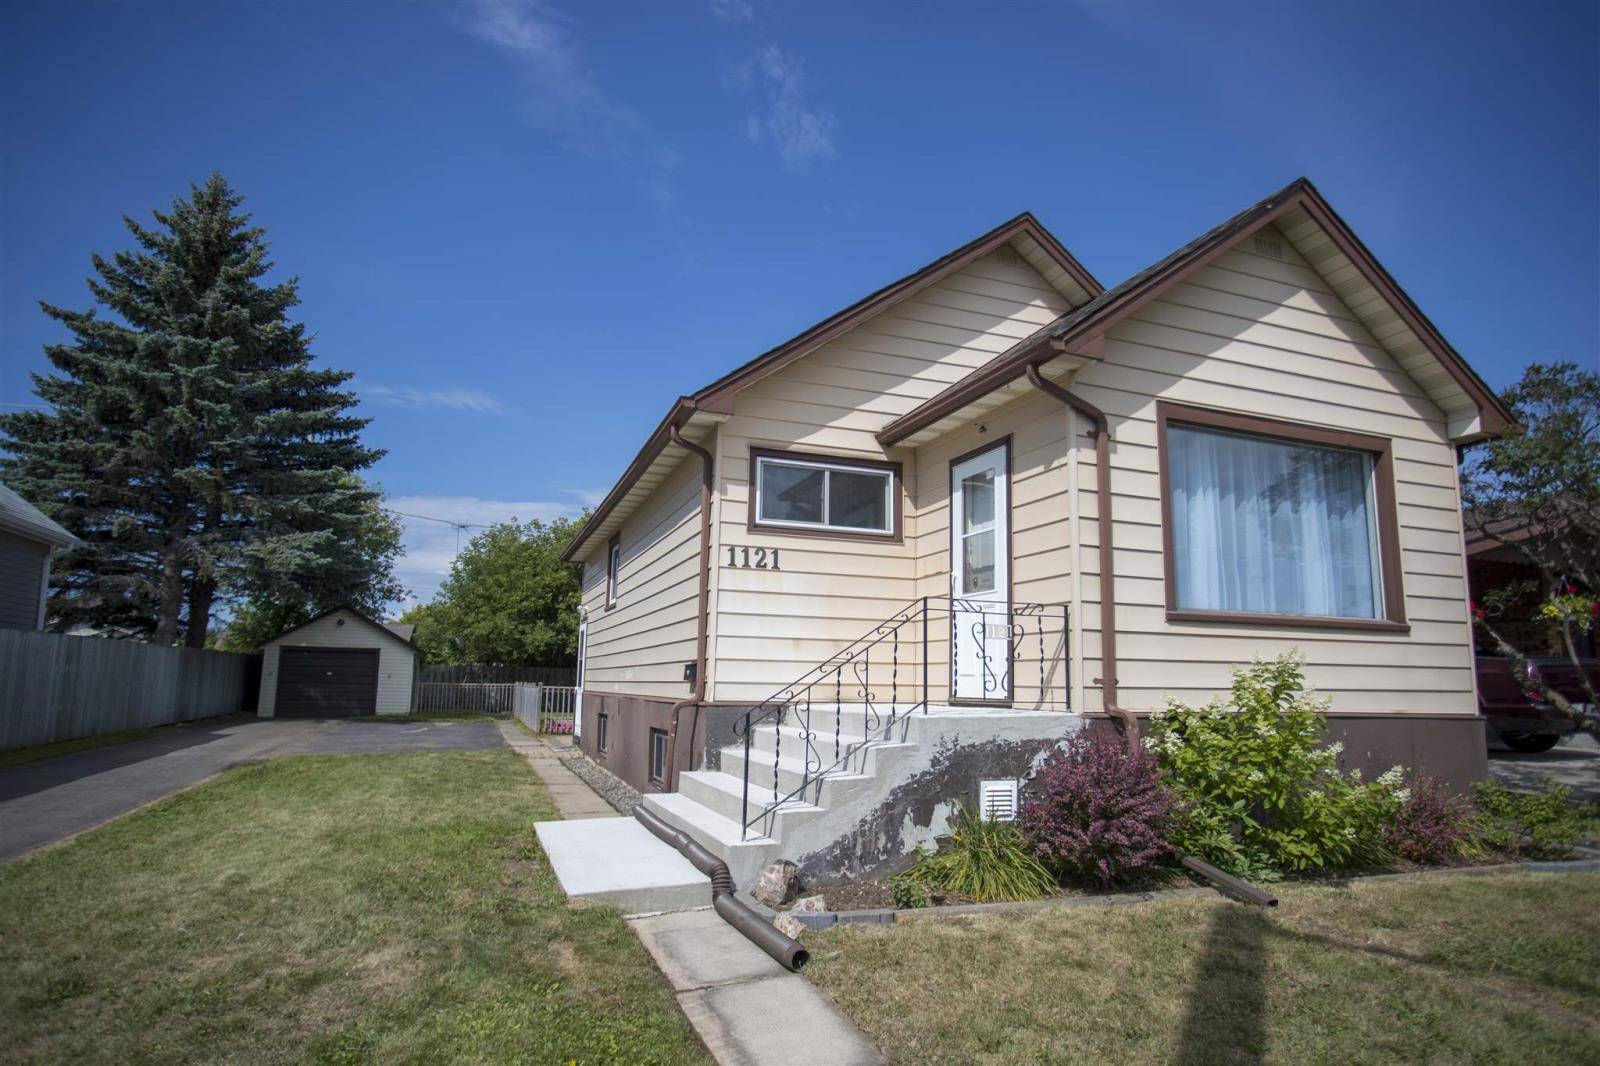 House for sale at 1121 Centre Ave Thunder Bay Ontario - MLS: TB192739